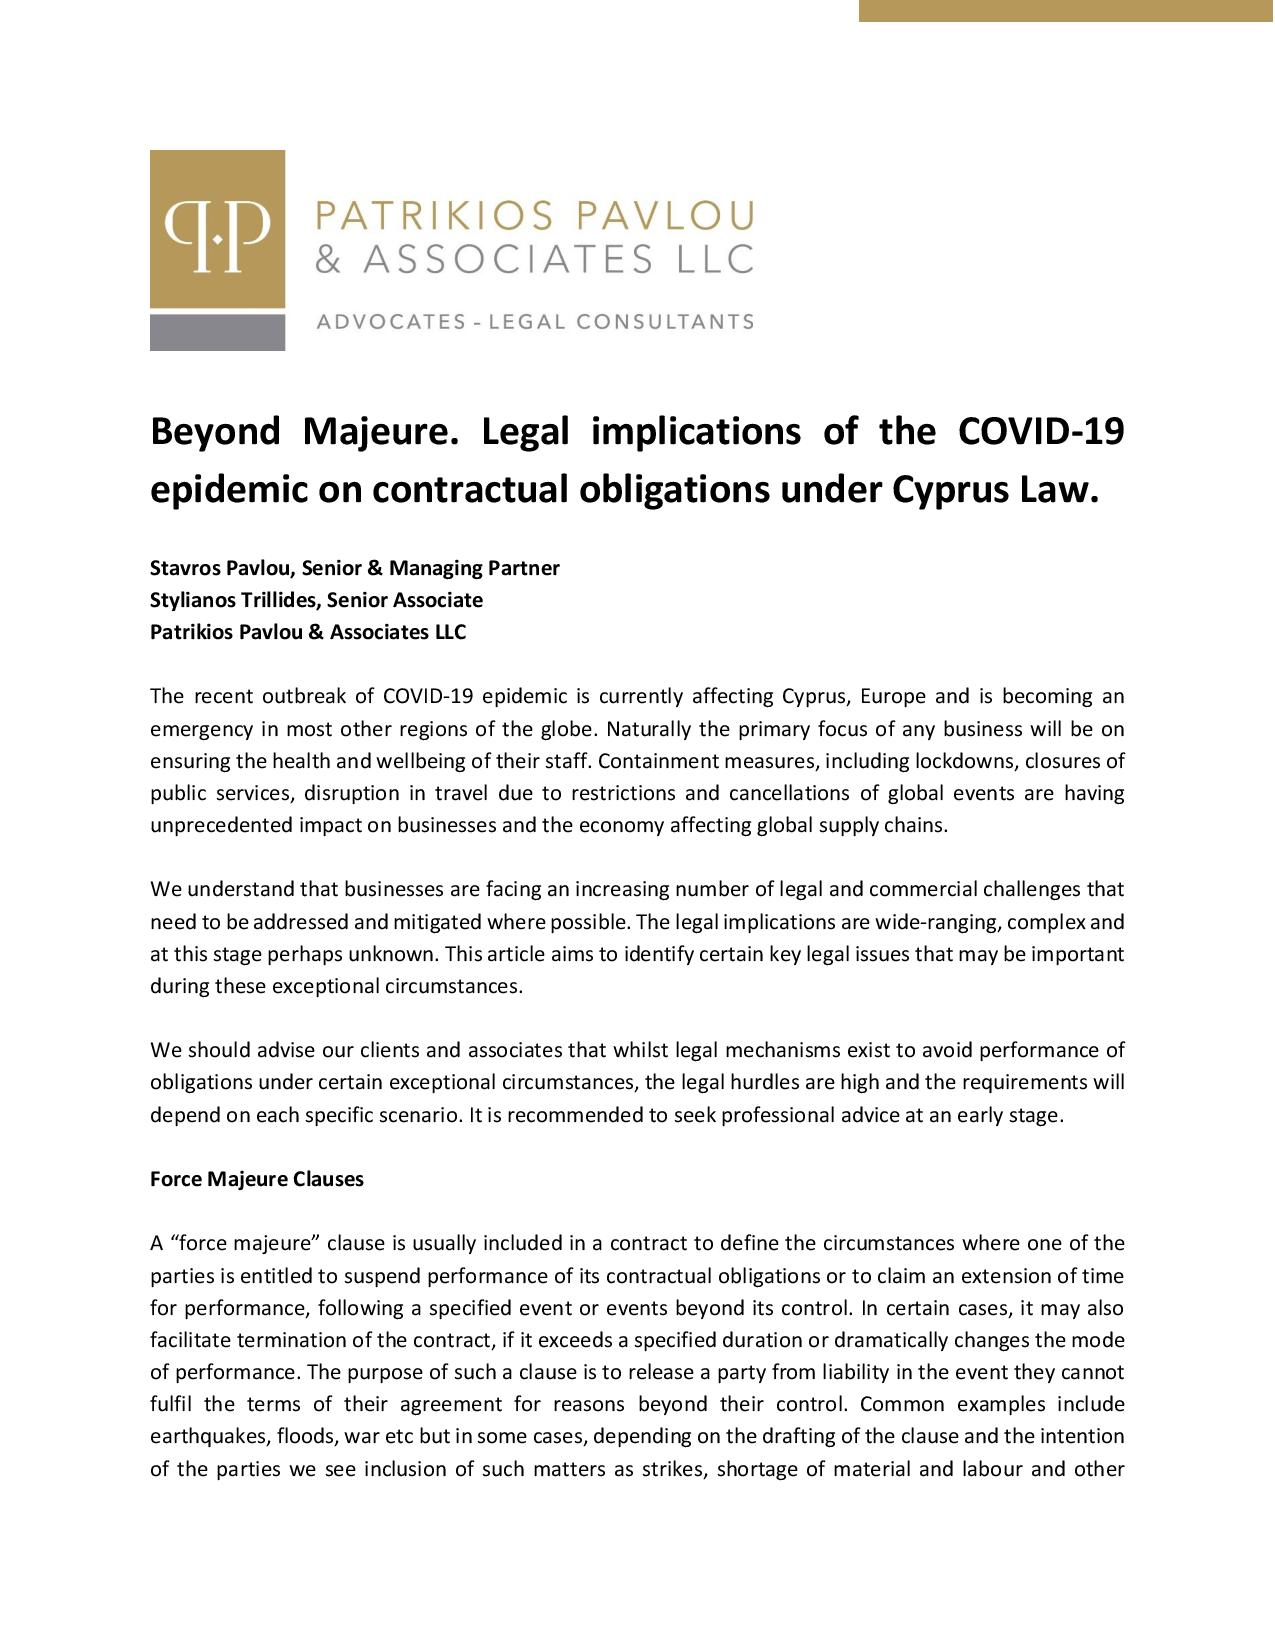 Beyond Majeure. Legal implications of the COVID-19 epidemic on contractual obligations under Cyprus Law.